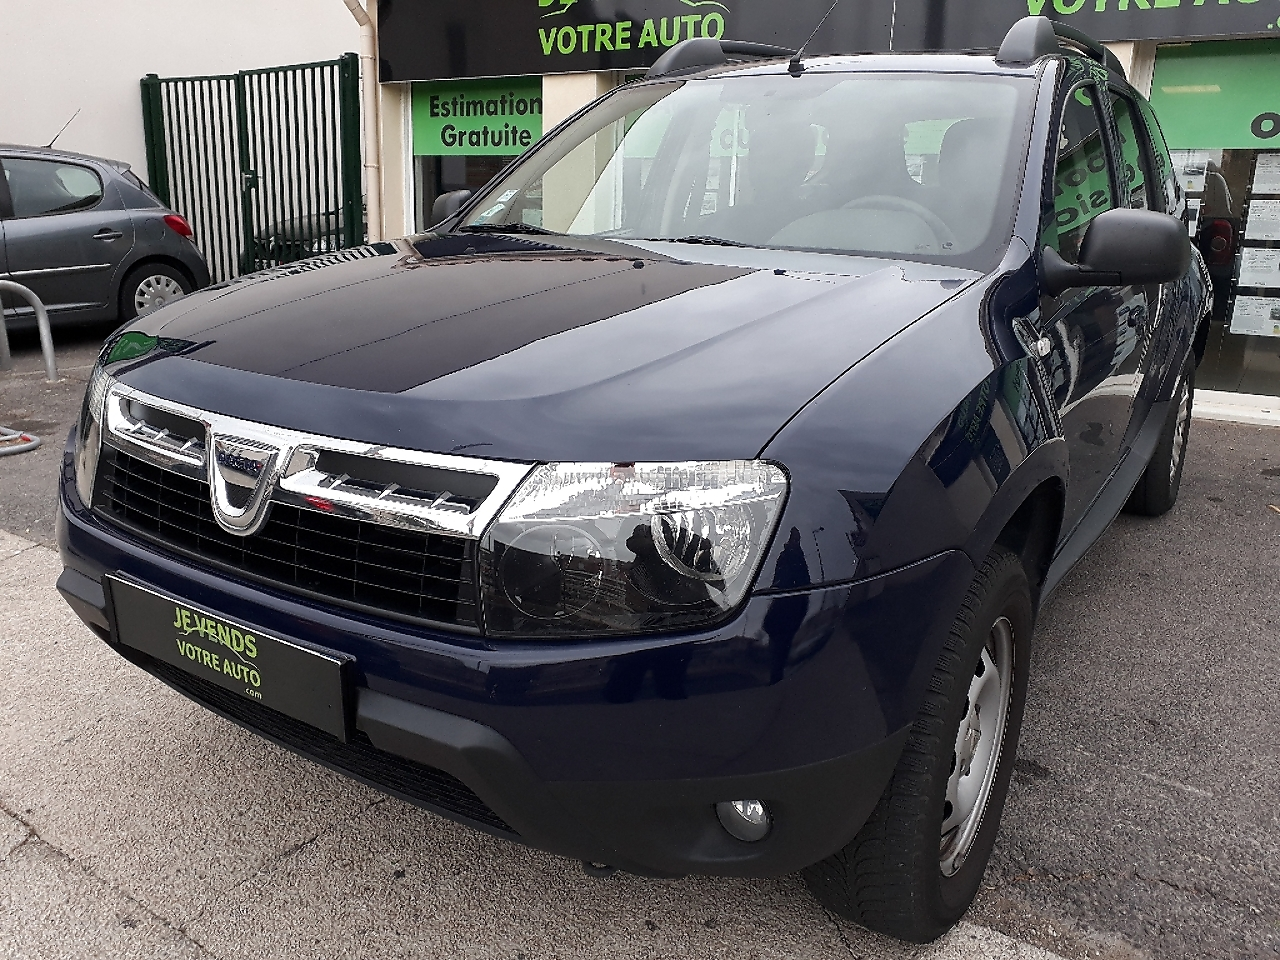 voiture dacia duster 1 5 dci 110ch fap laur ate 4x4 occasion diesel 2011 110700 km 8390. Black Bedroom Furniture Sets. Home Design Ideas